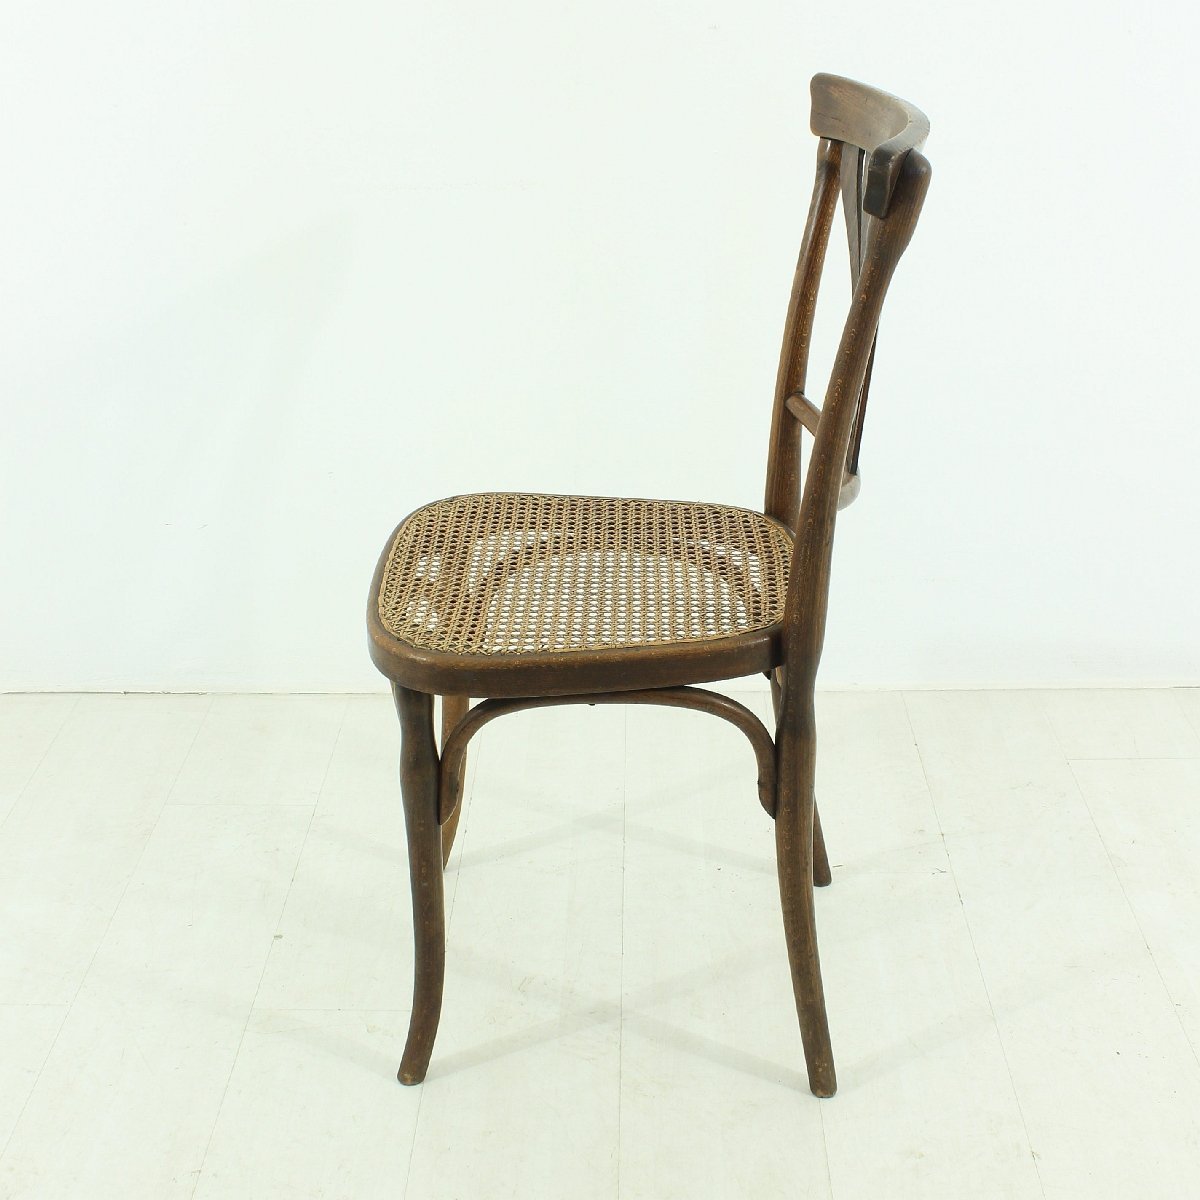 bentwood bistro chairs for sale portable high chair baby antique set of 2 at pamono